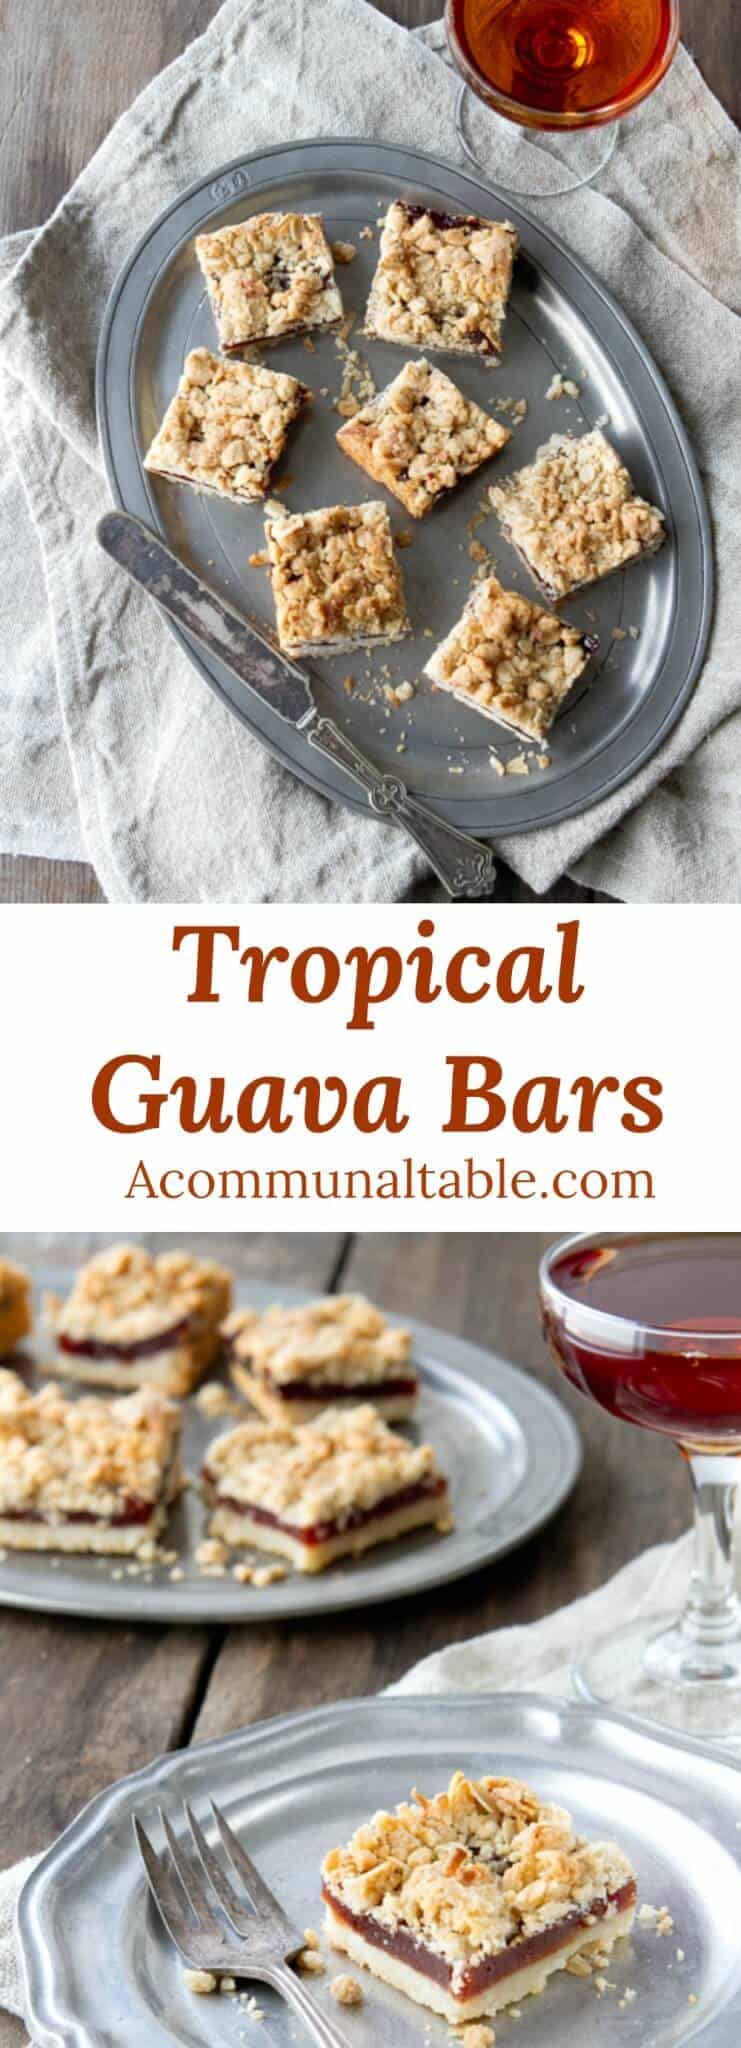 This Tropical Guava Bars dessert recipe is quick and delicious. Guava paste and coconut are the secret for these backyard luau favorites.